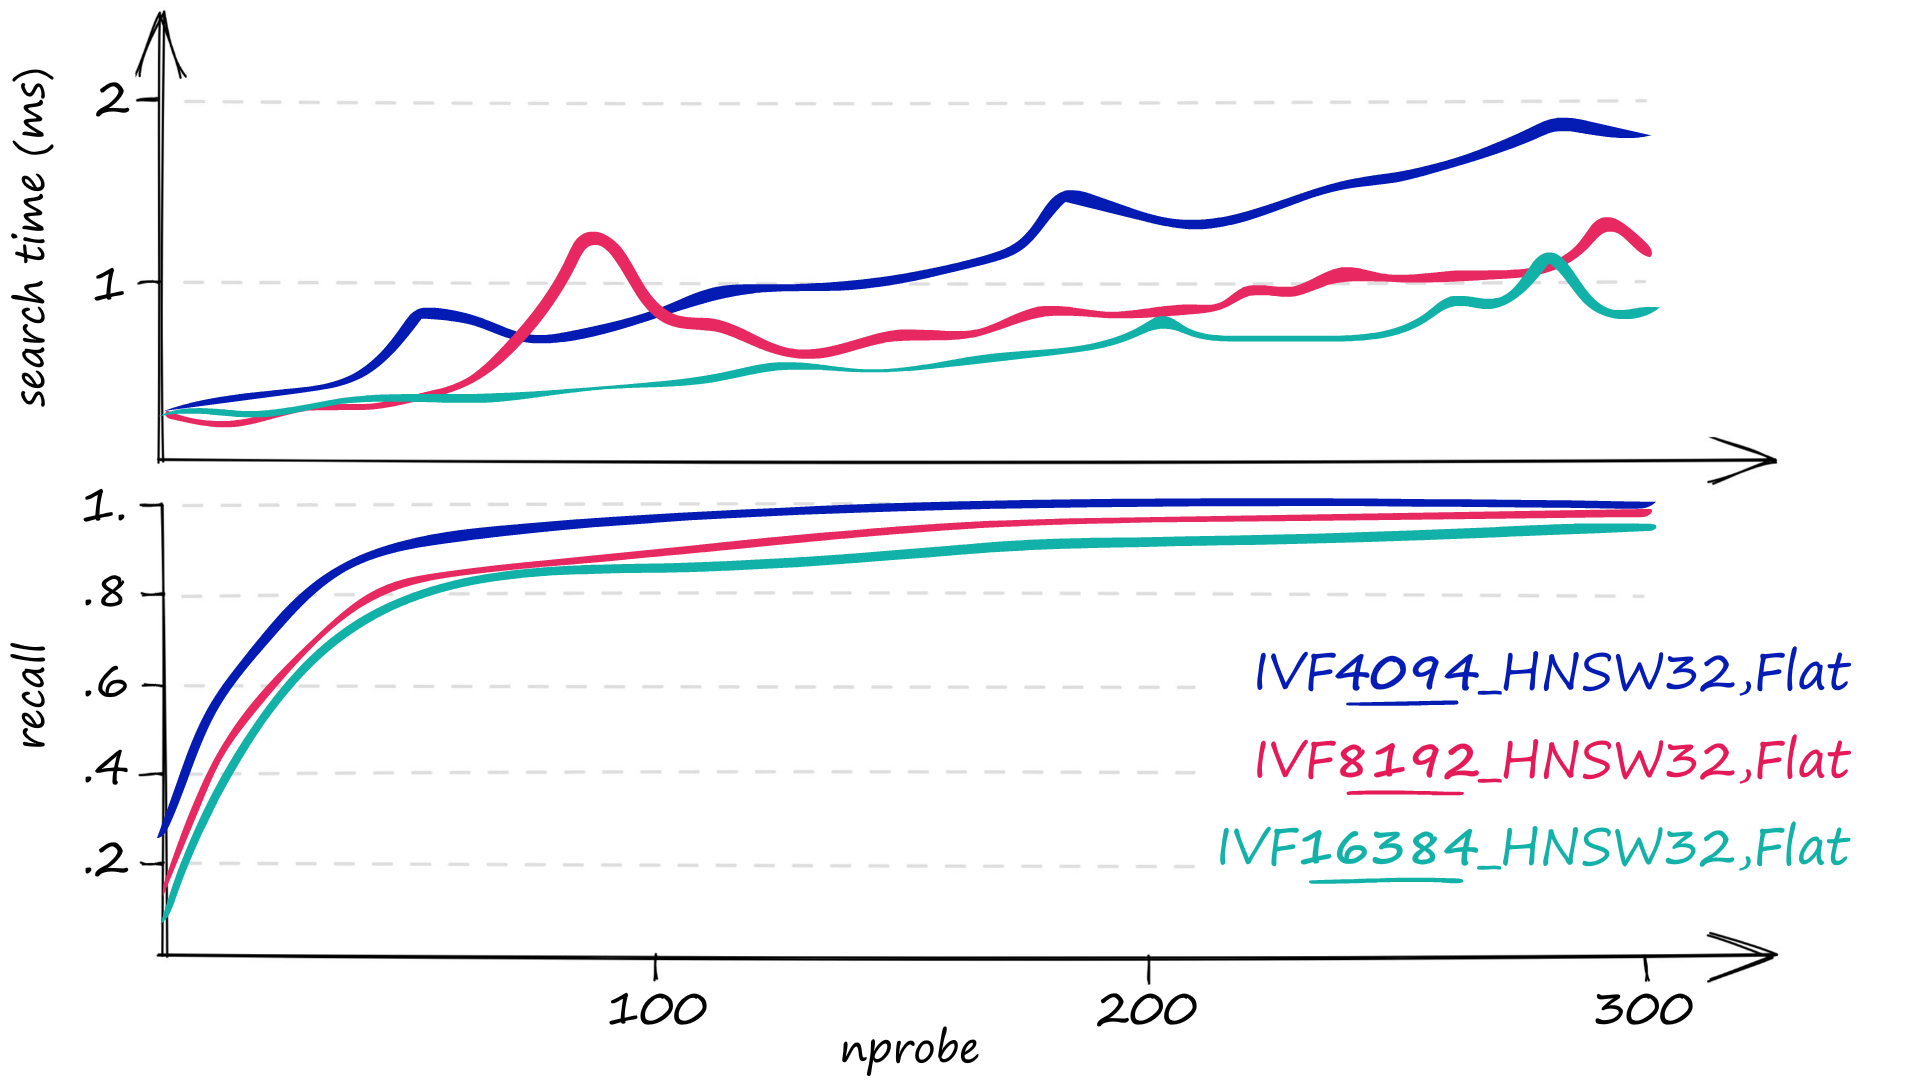 Performance of HNSW IVF composite index